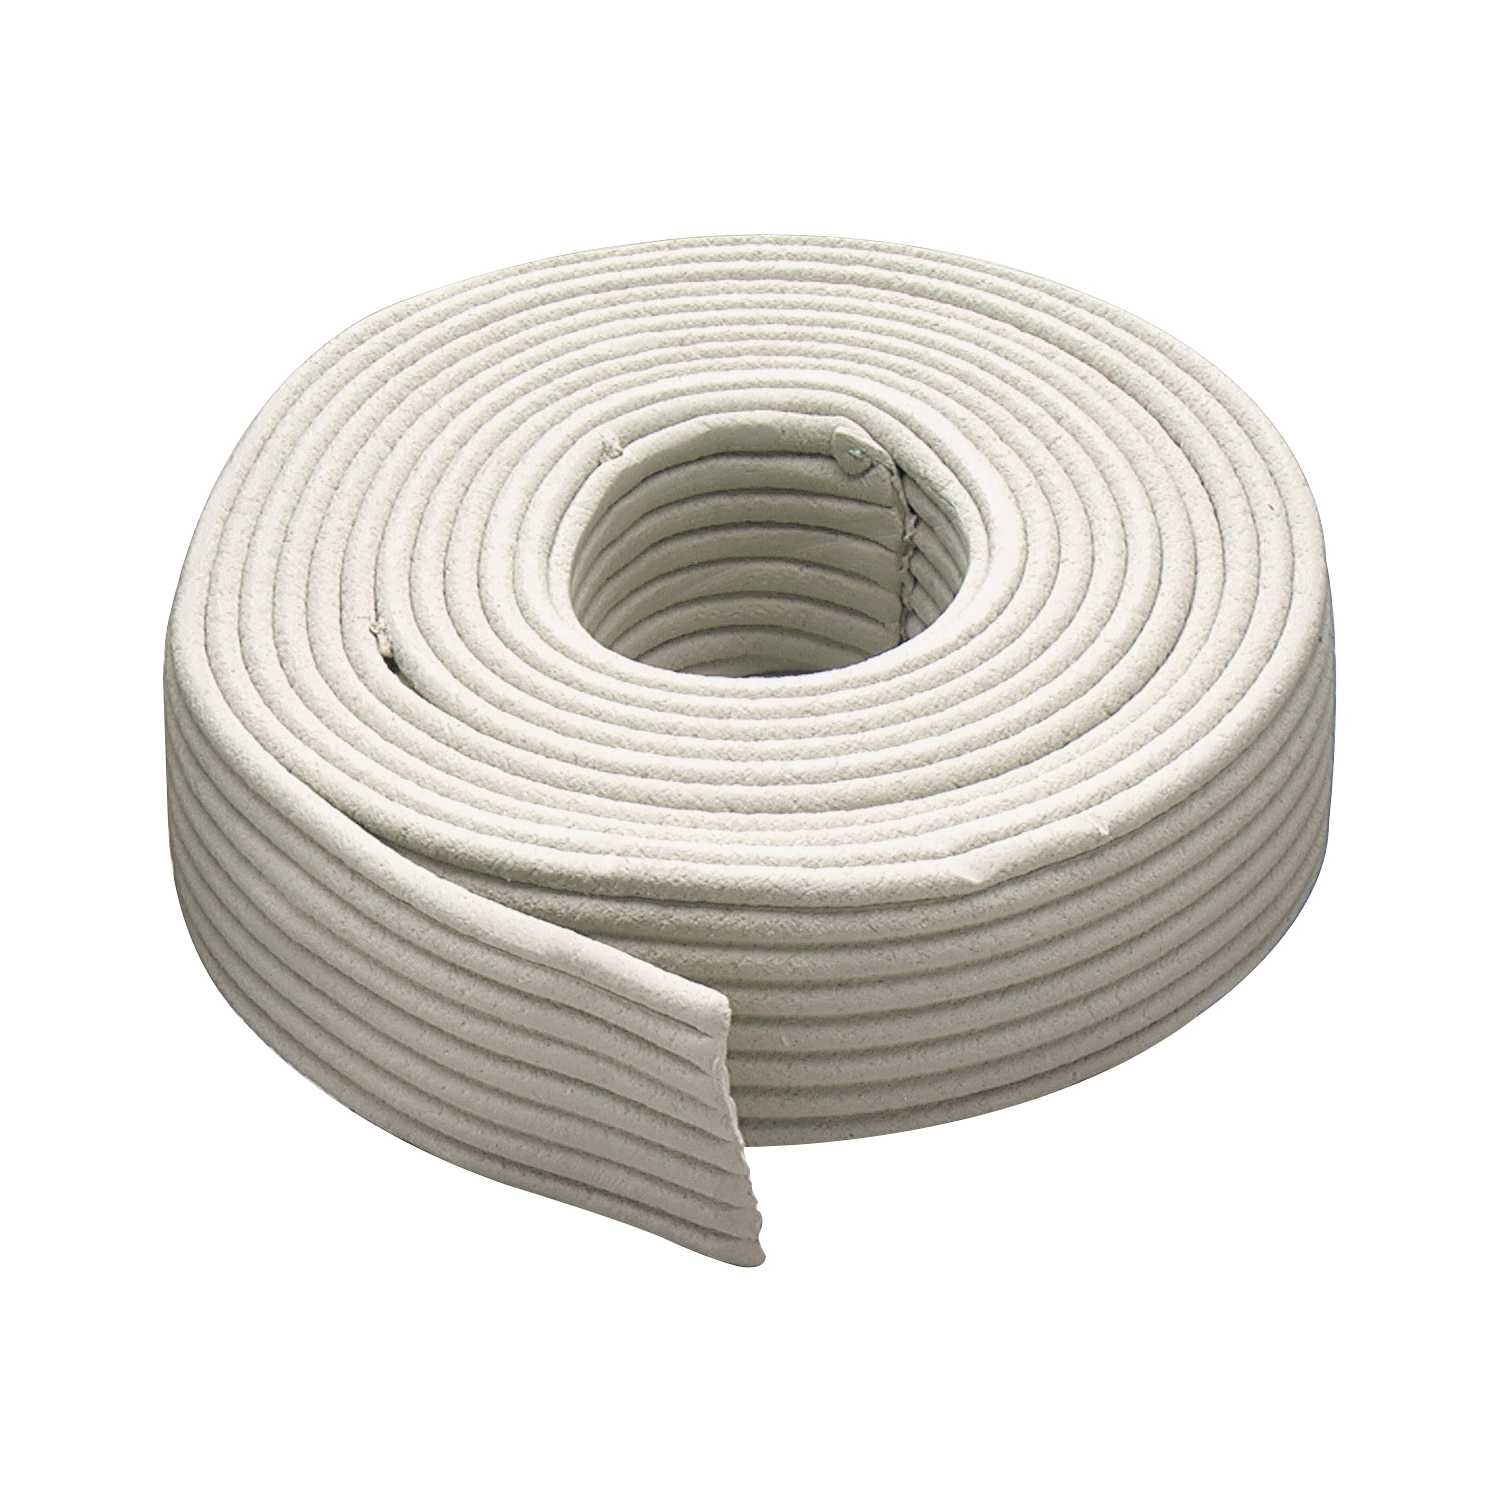 Picture of M-D 71548 Caulking Cord, 90 ft L, Gray